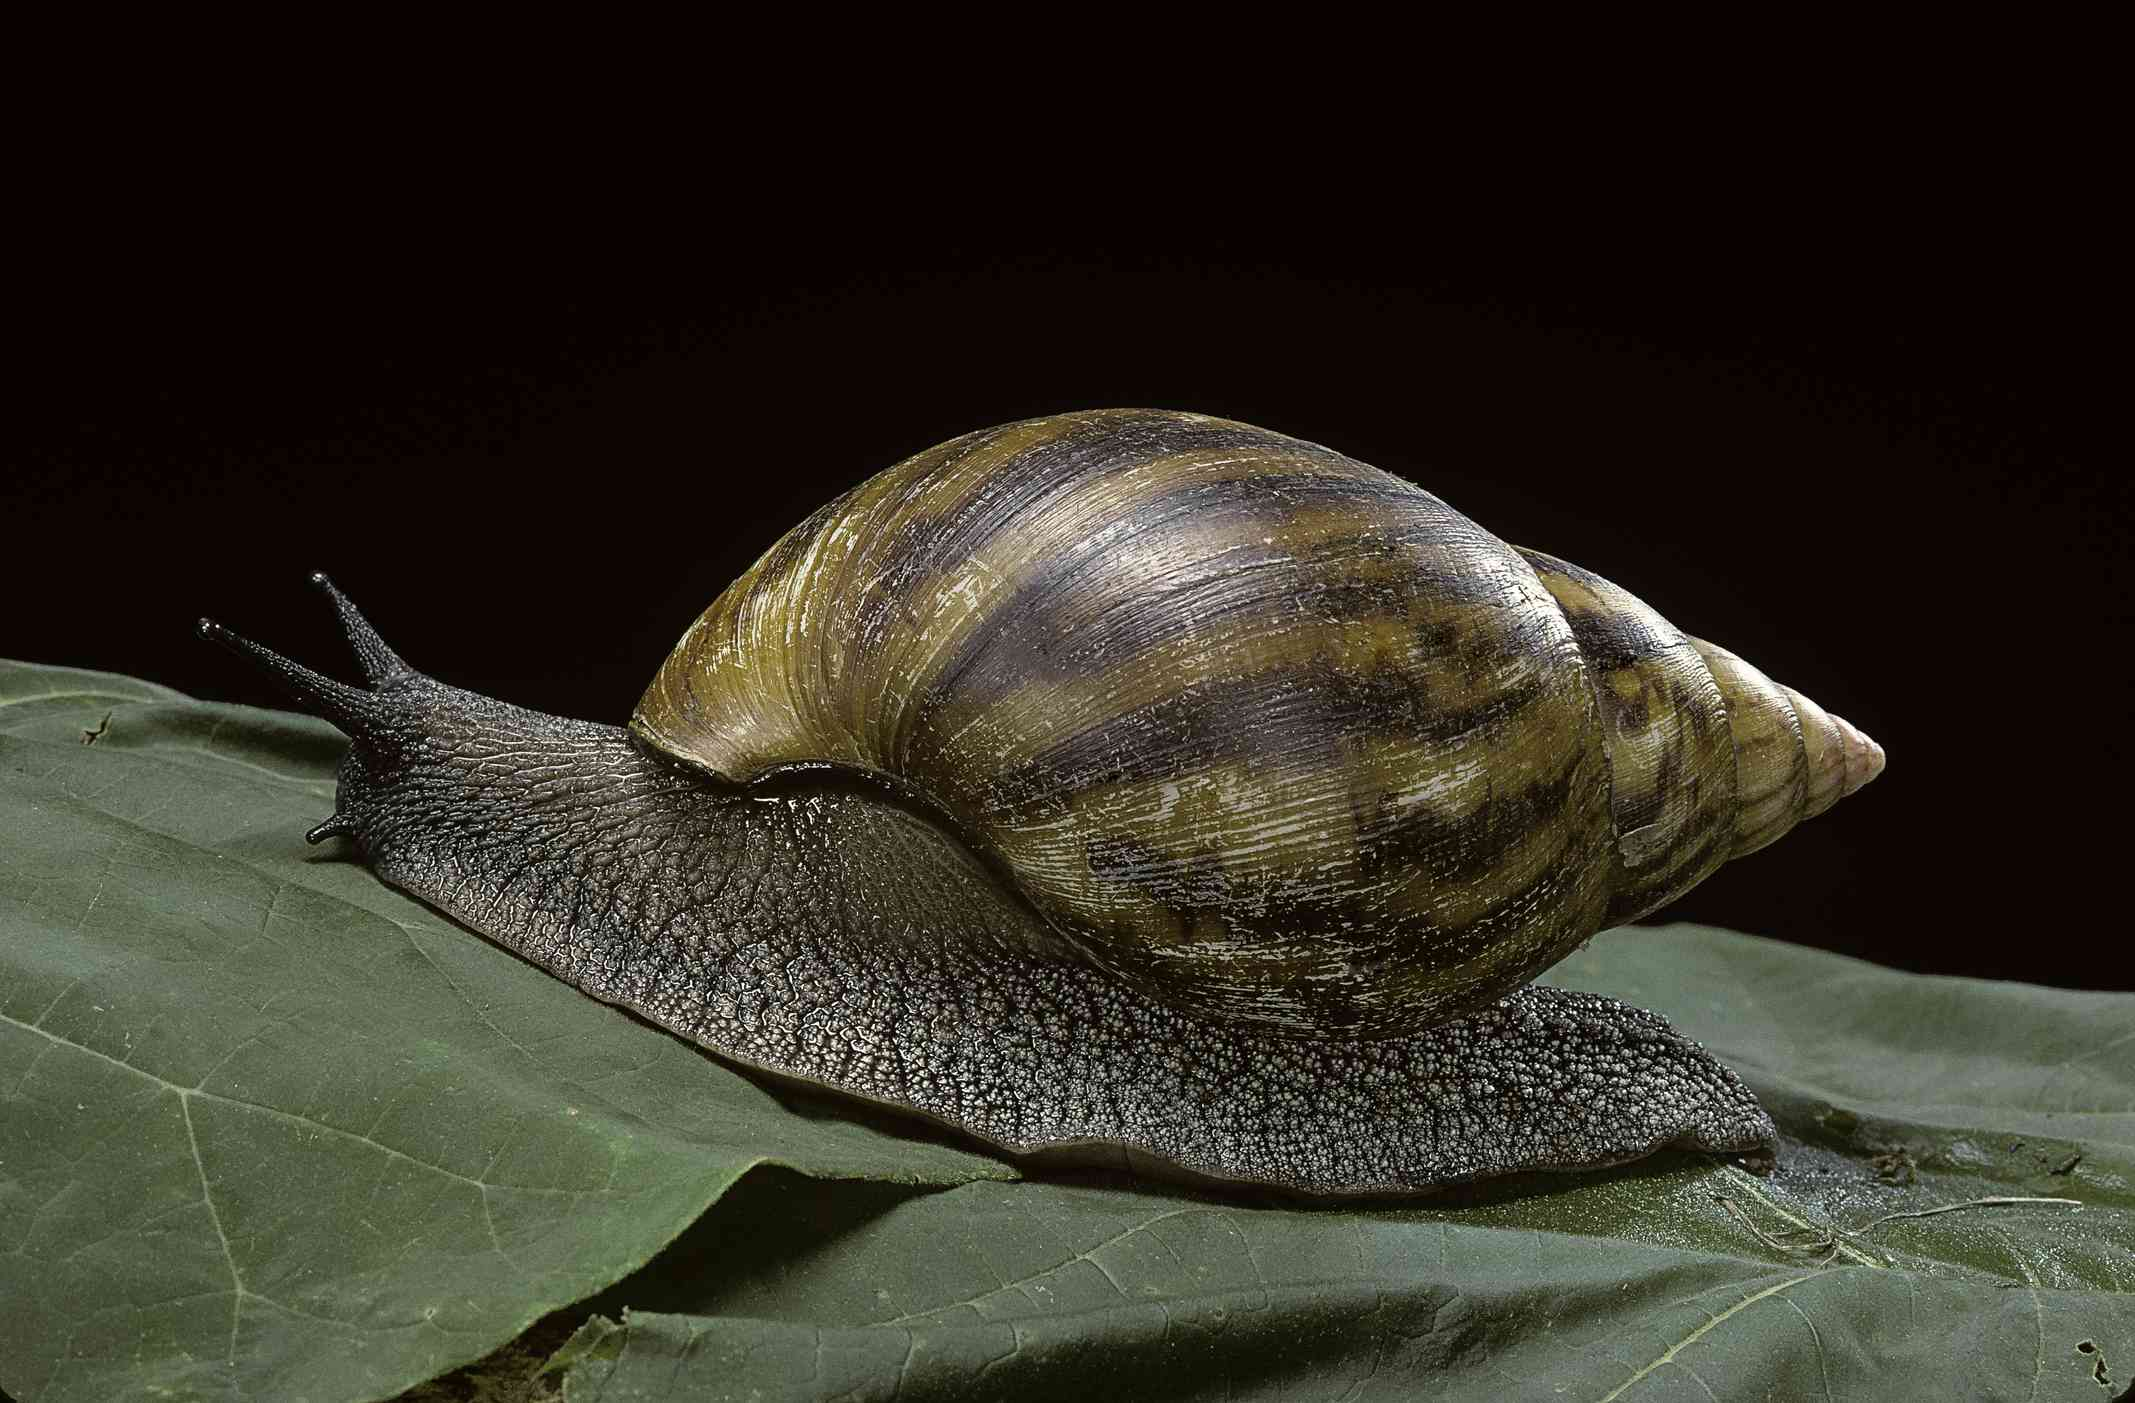 Giant African snail on a bed of leaves